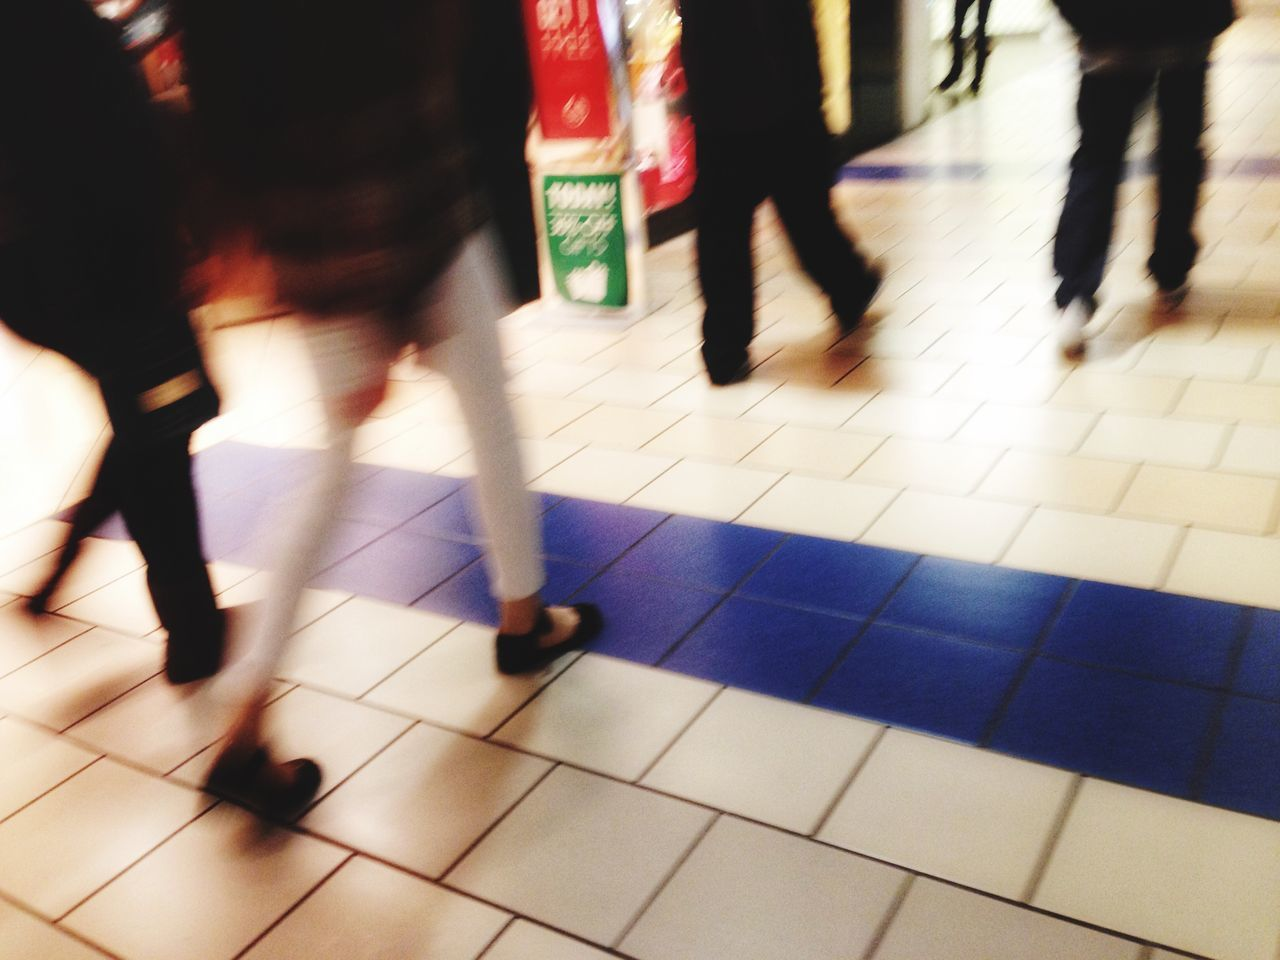 blurred motion, motion, real people, walking, speed, low section, human leg, indoors, urgency, lifestyles, tile, transportation, rush hour, commuter, subway station, day, women, pedestrian, one person, city, people, adult